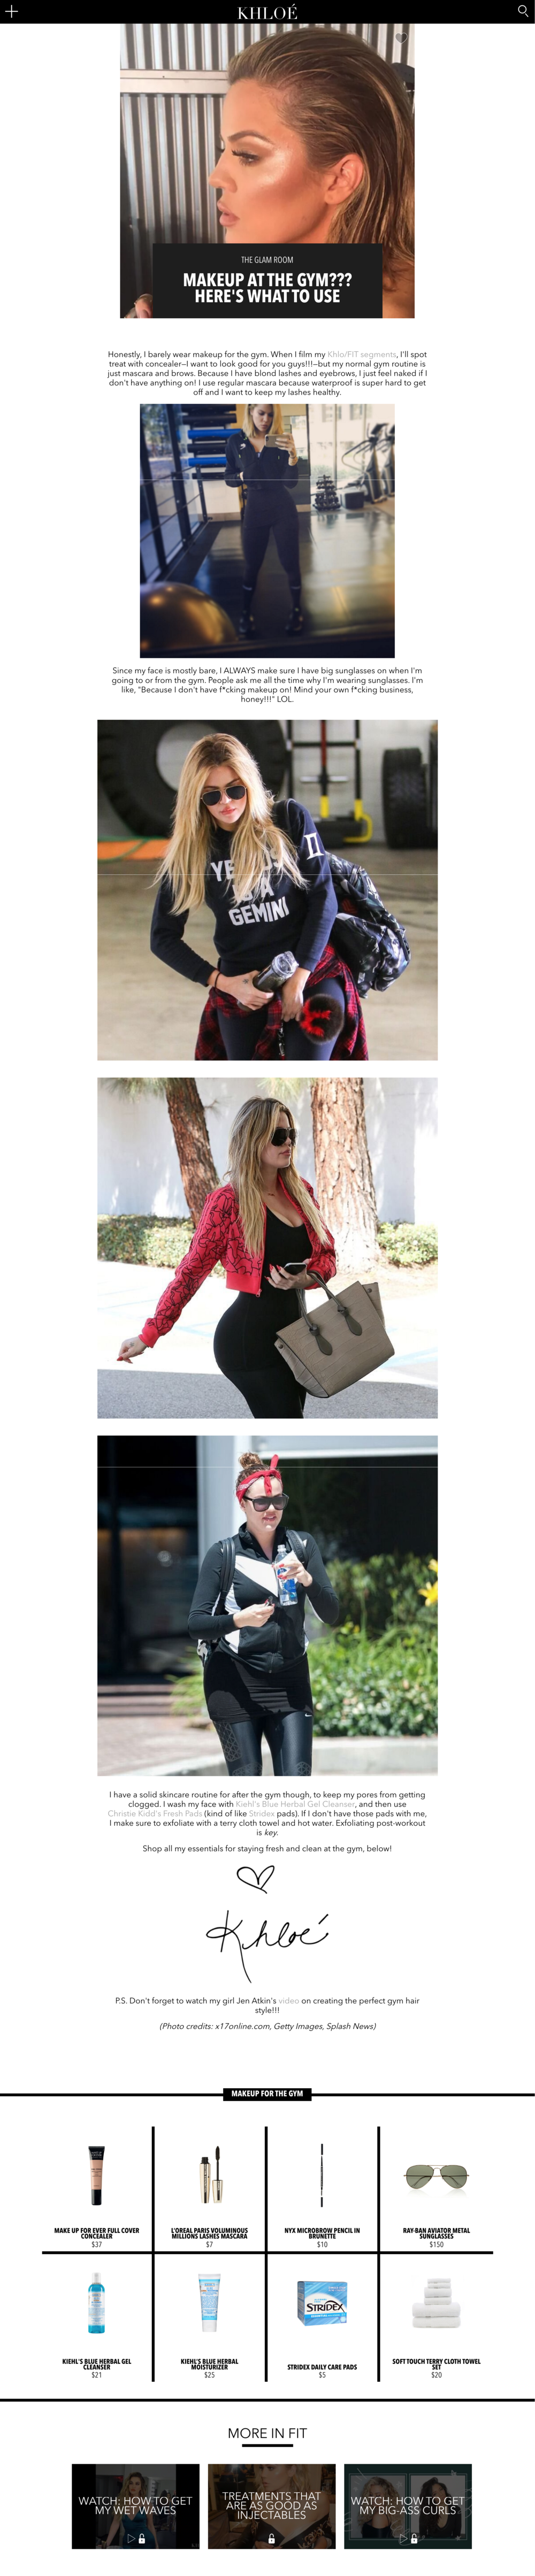 screencapture-khloewithak-fit-544-khloe-kardashian-makeup-gym-heres-what-use-2018-06-01-13_48_38.png